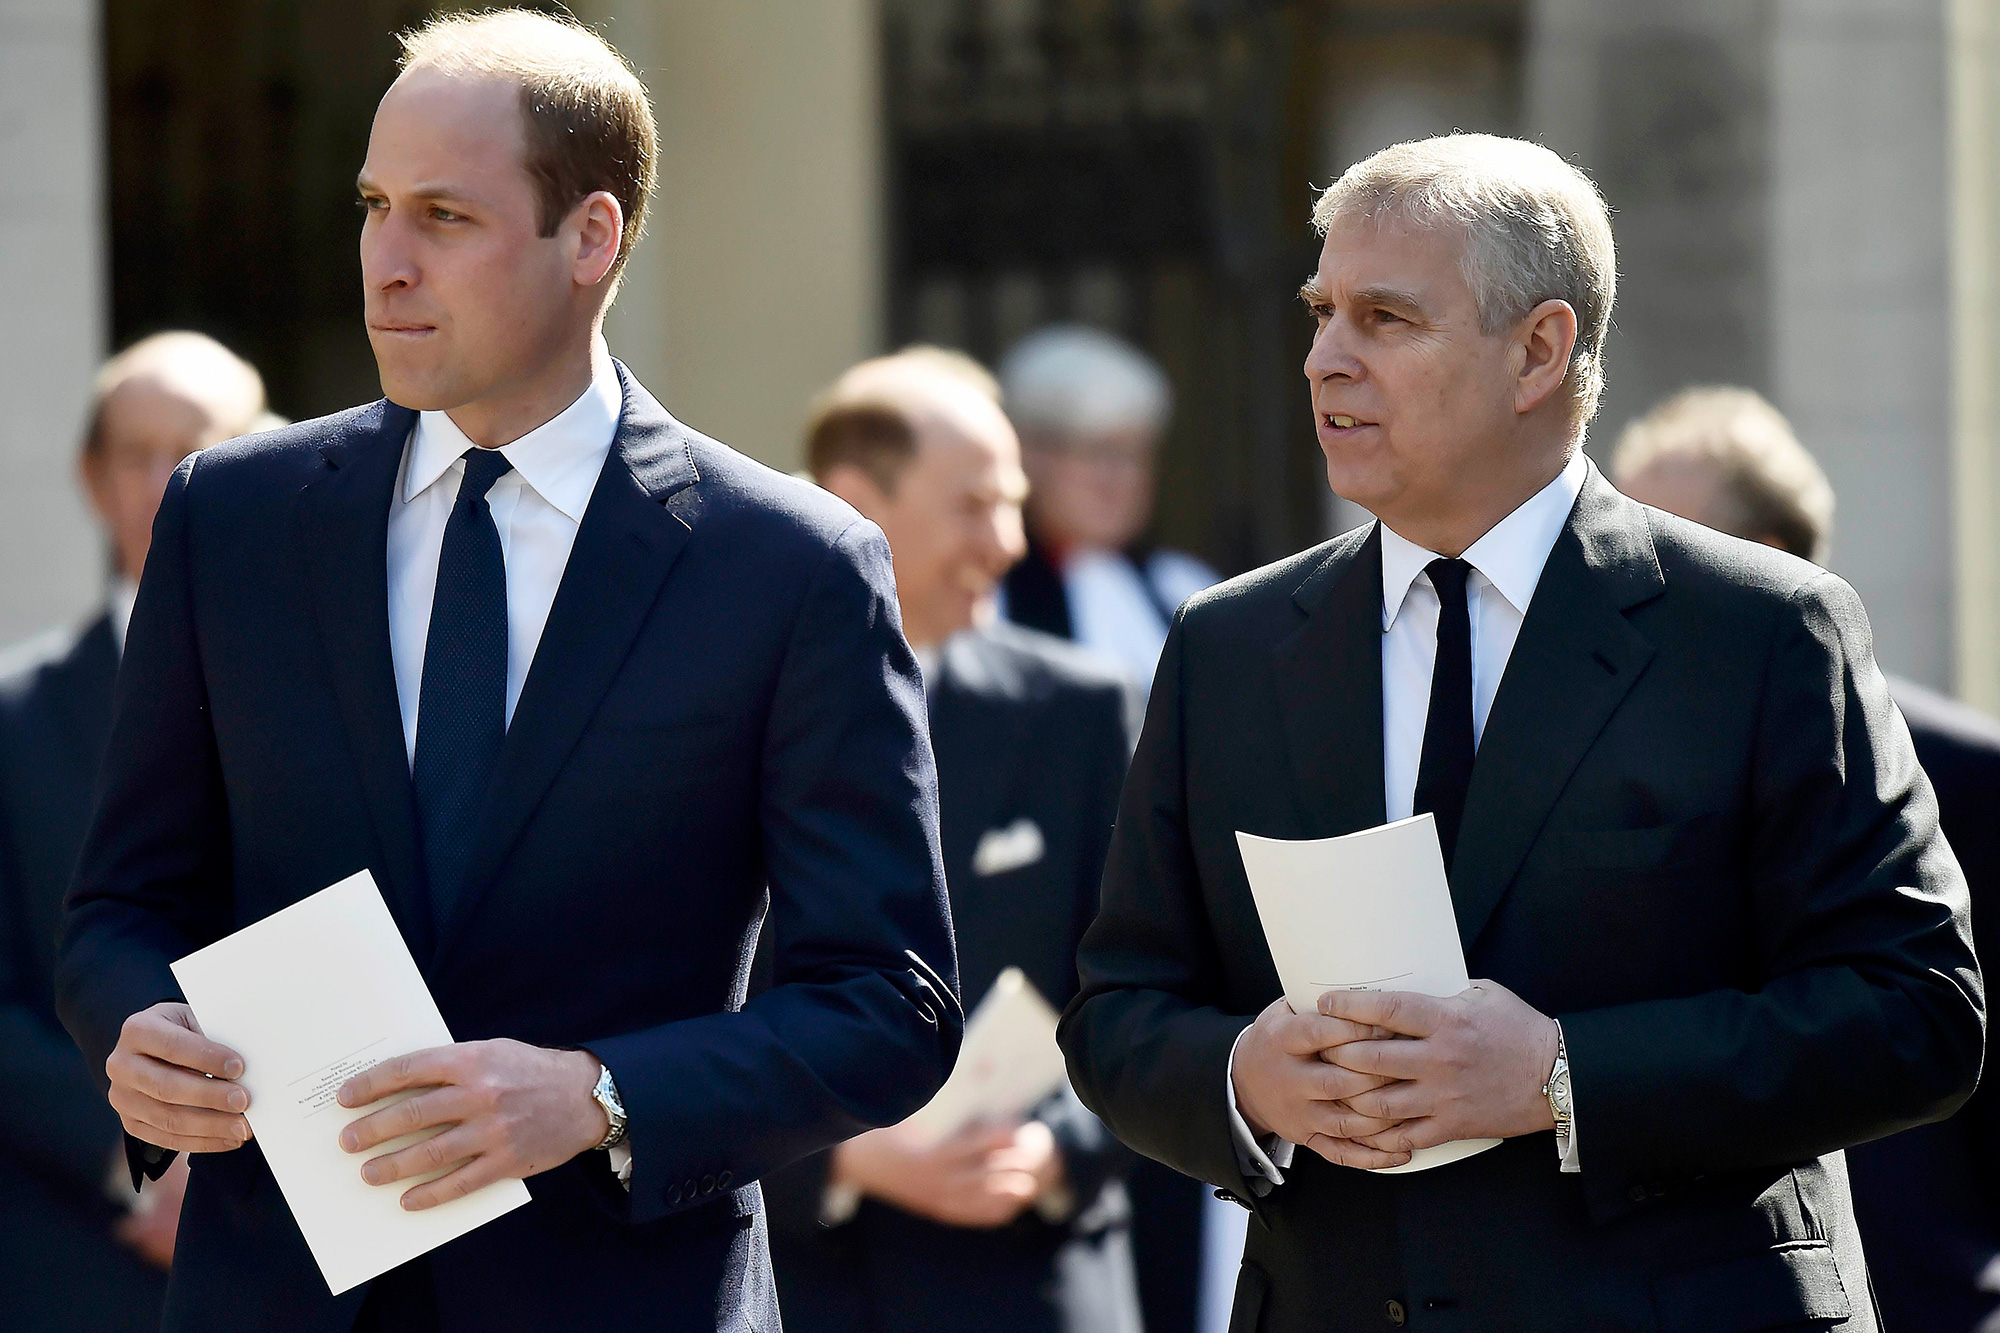 Prince William, Duke of Cambridge and Prince Andrew, Duke of York